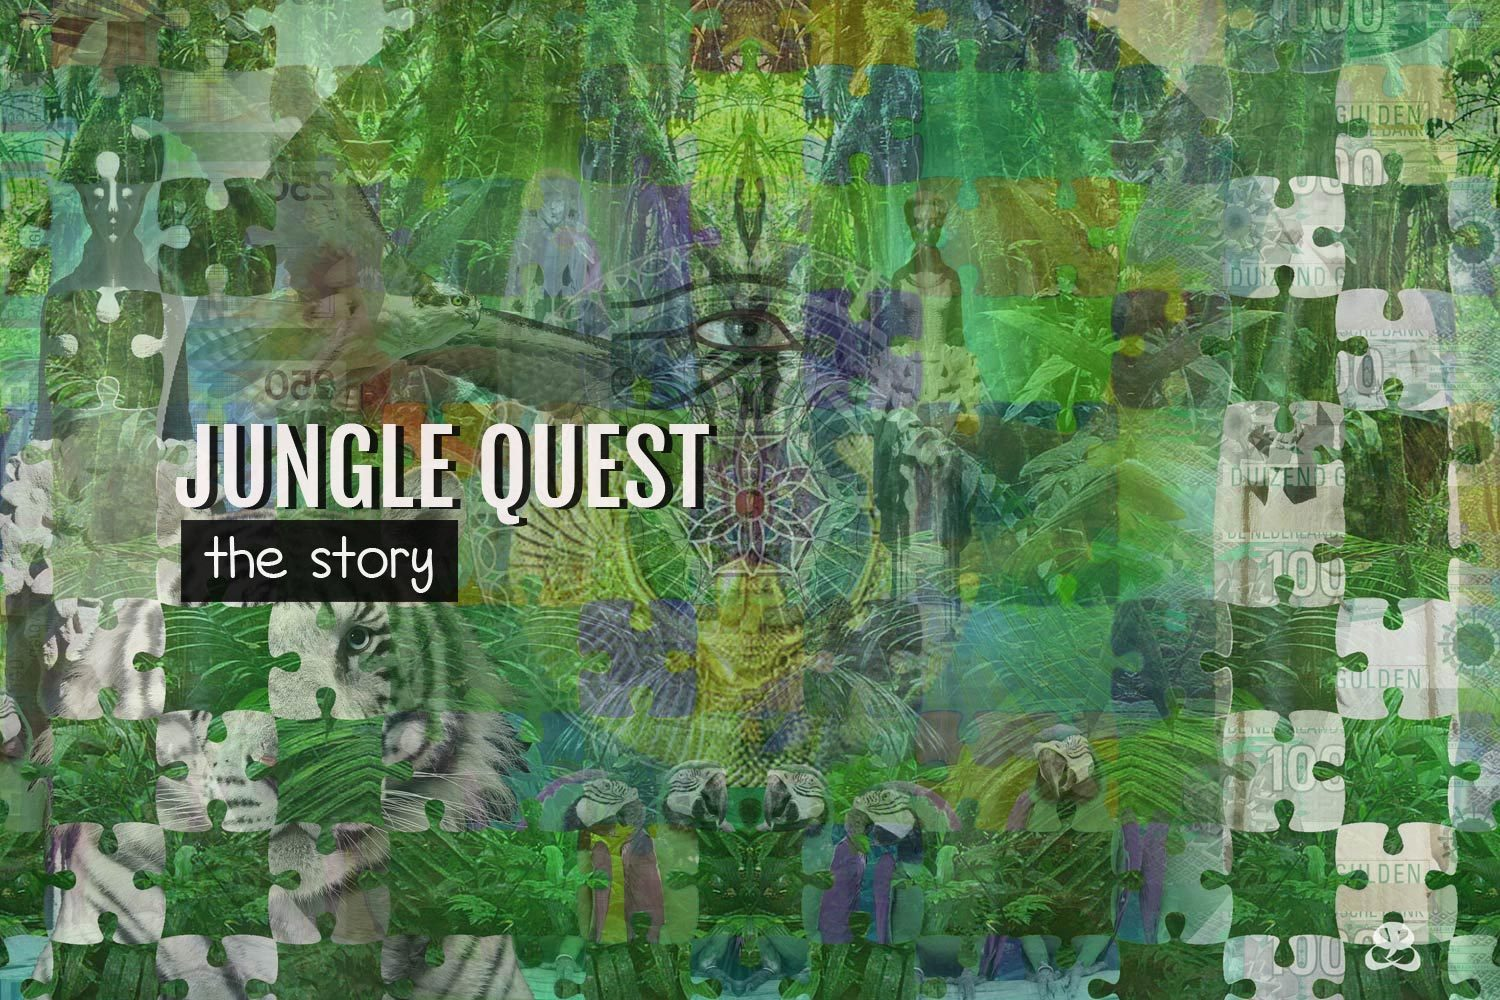 DIGITAL ART AMSTERDAM - Art Story JUNGLE QUEST